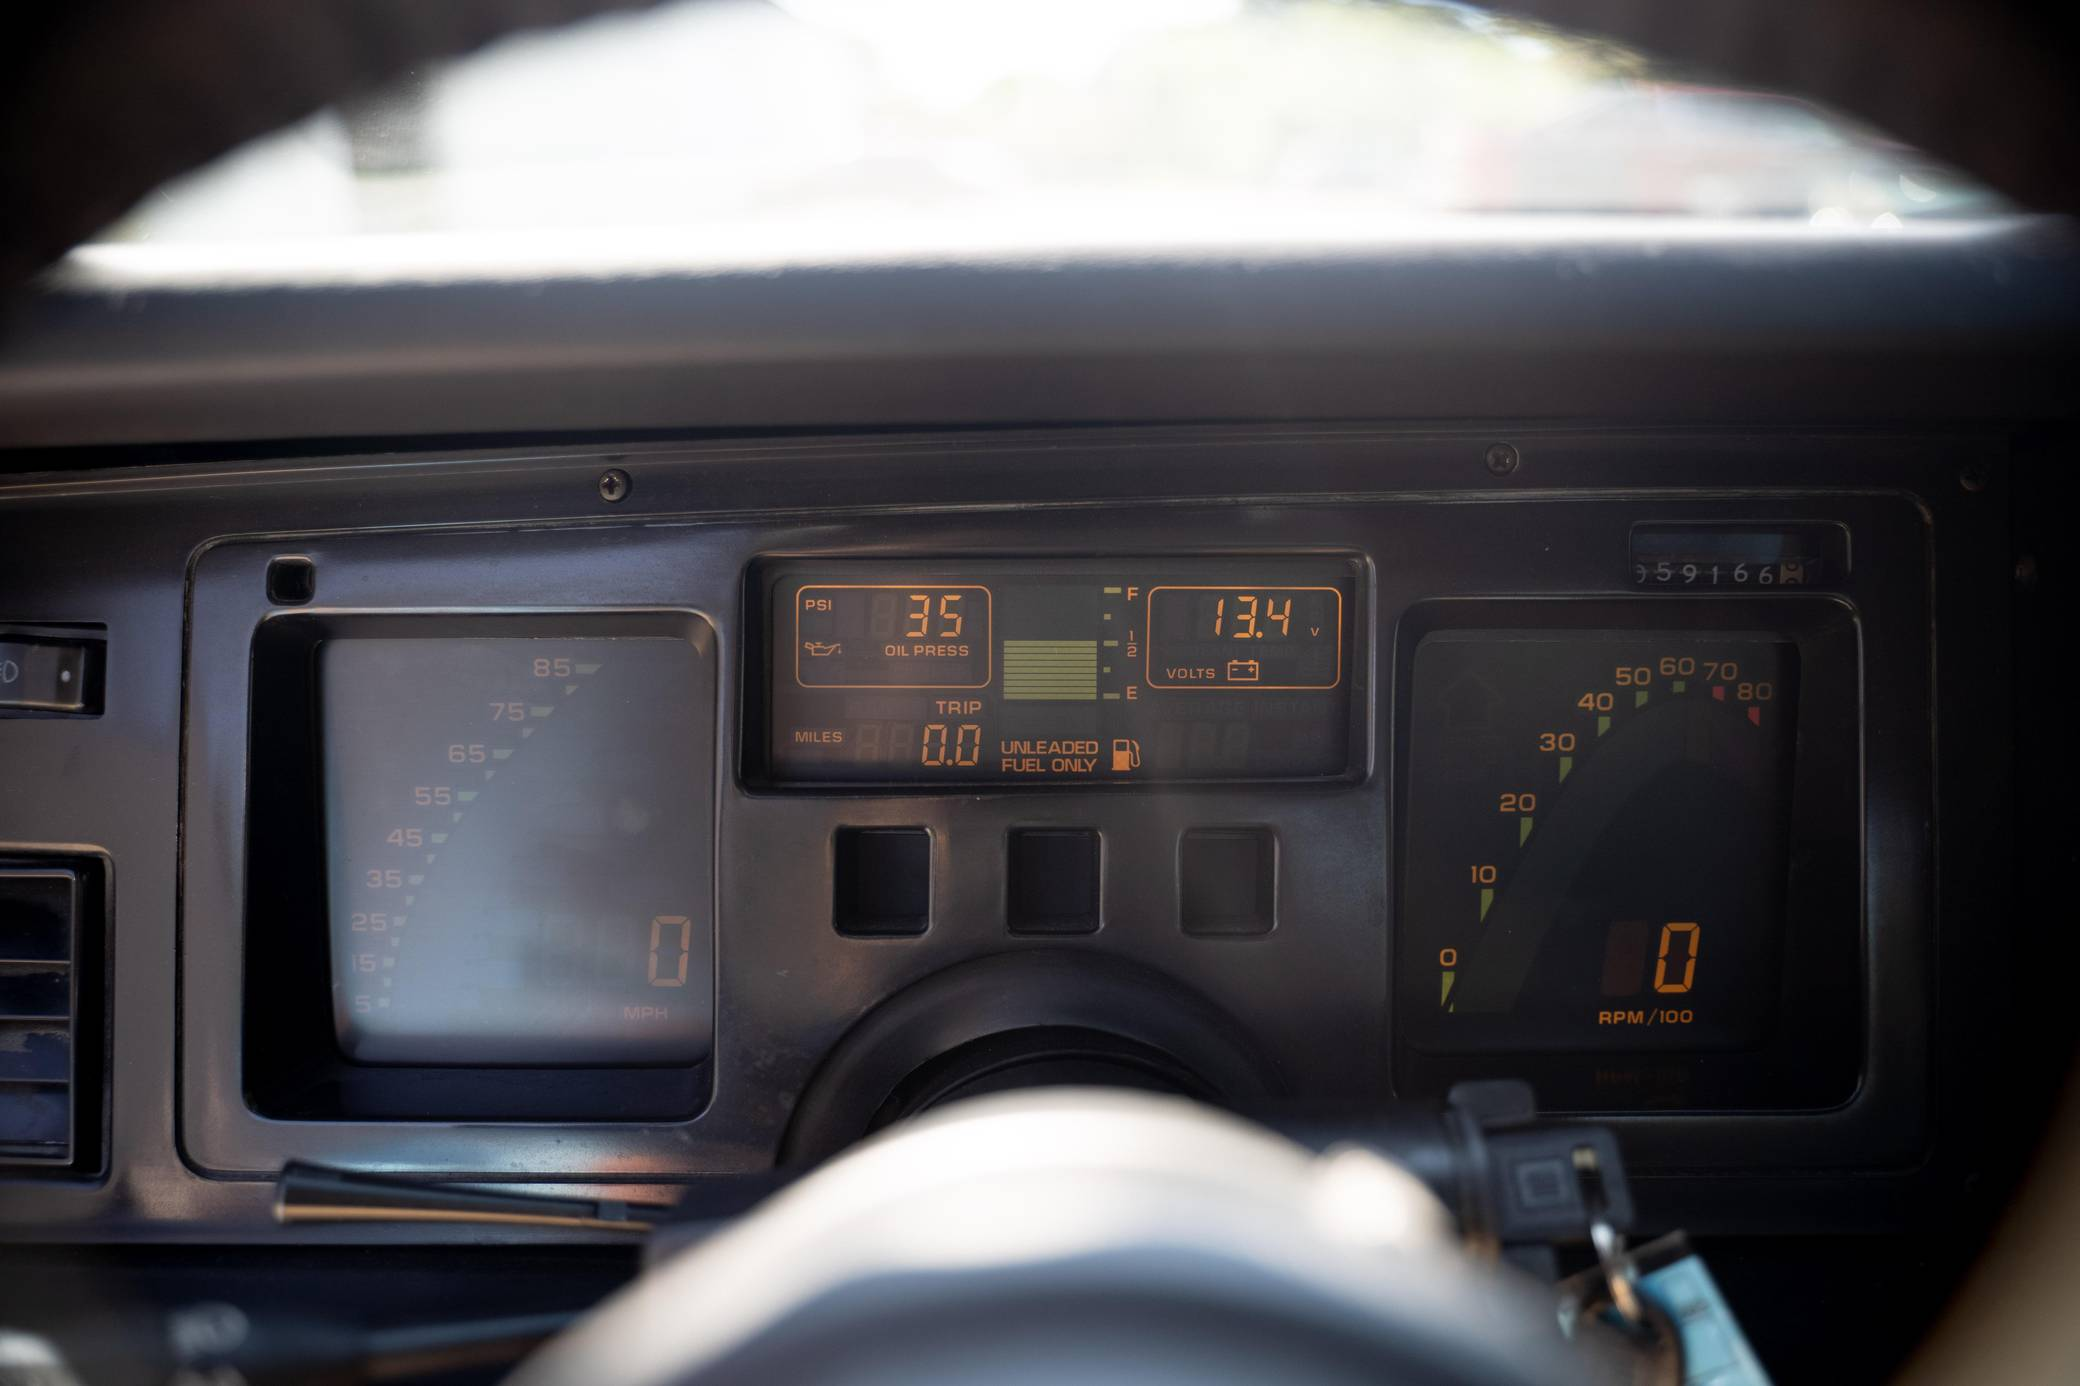 Chevy Vette King of the Hill Prototype interior digital dash